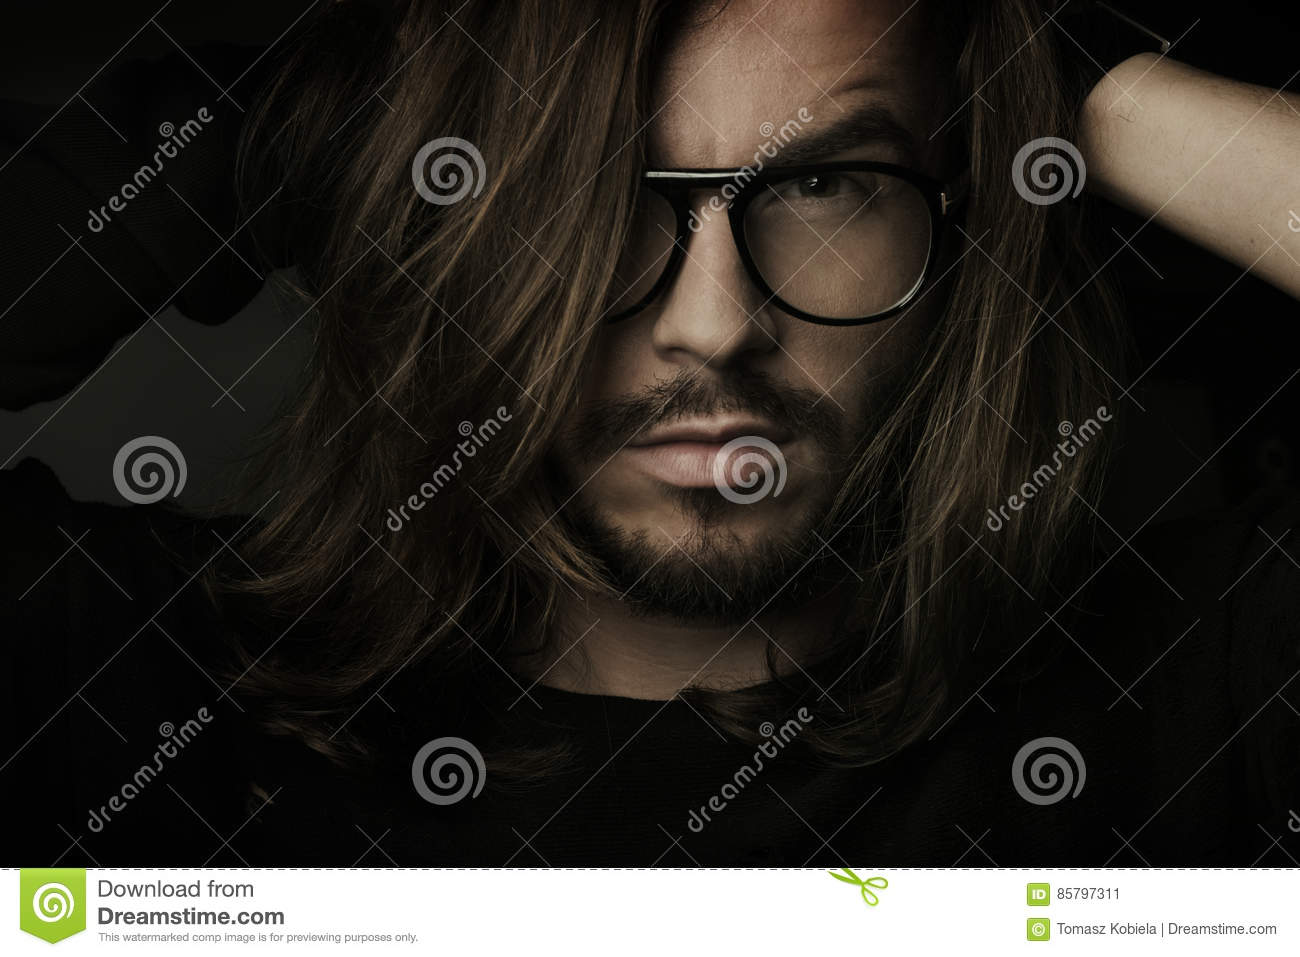 Artistic dark portrait of the young beautiful man